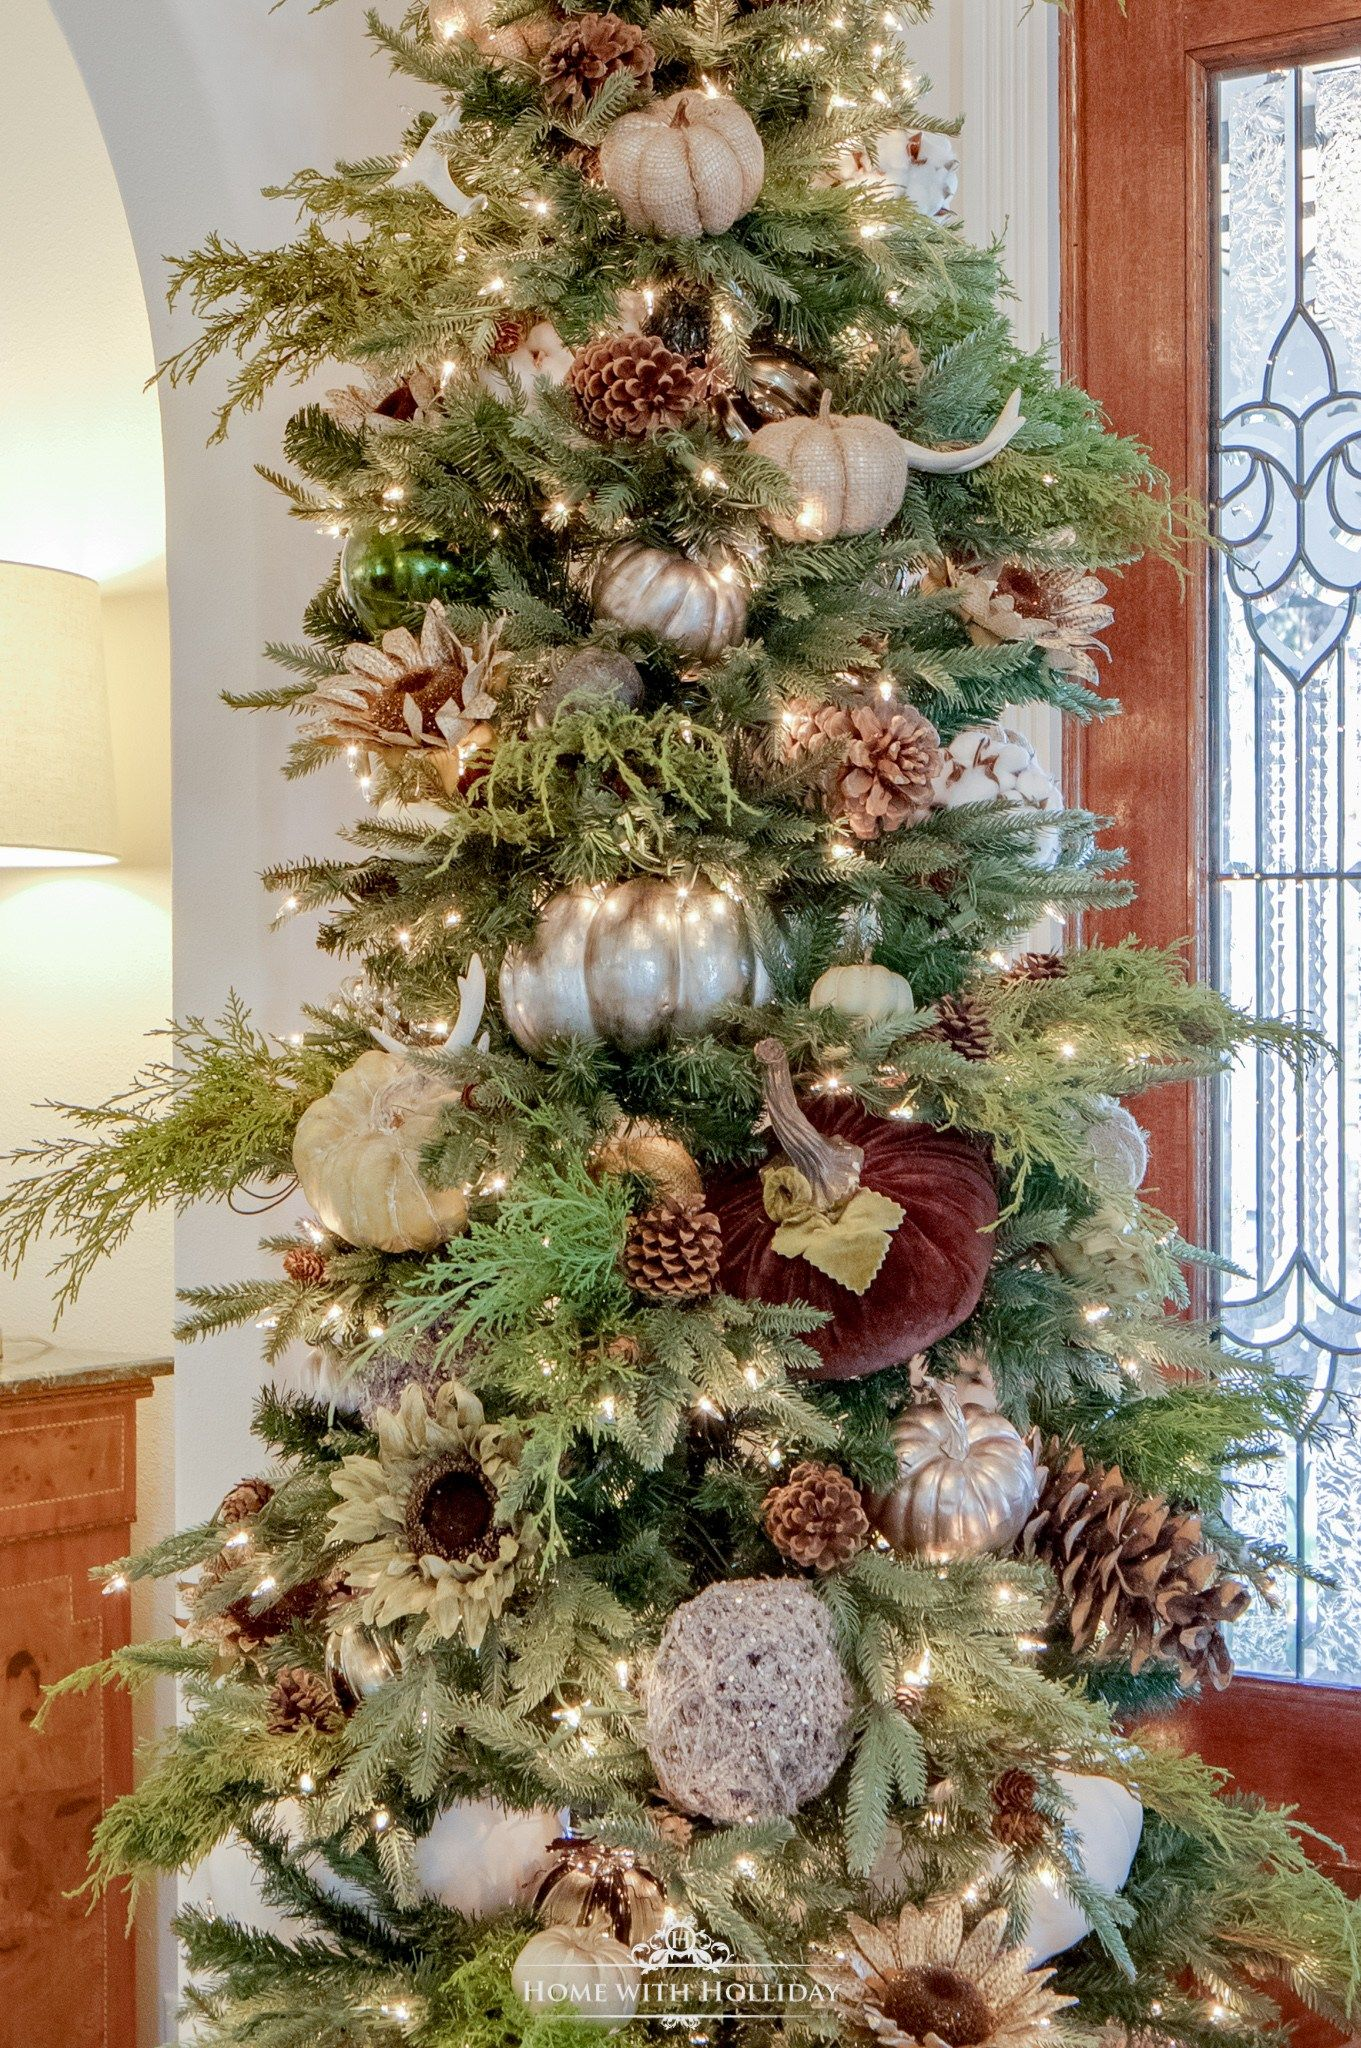 Green And White Winter Christmas Tree Home With Holliday Holiday Decor Thanksgiving Fall Christmas Tree Thanksgiving Tree